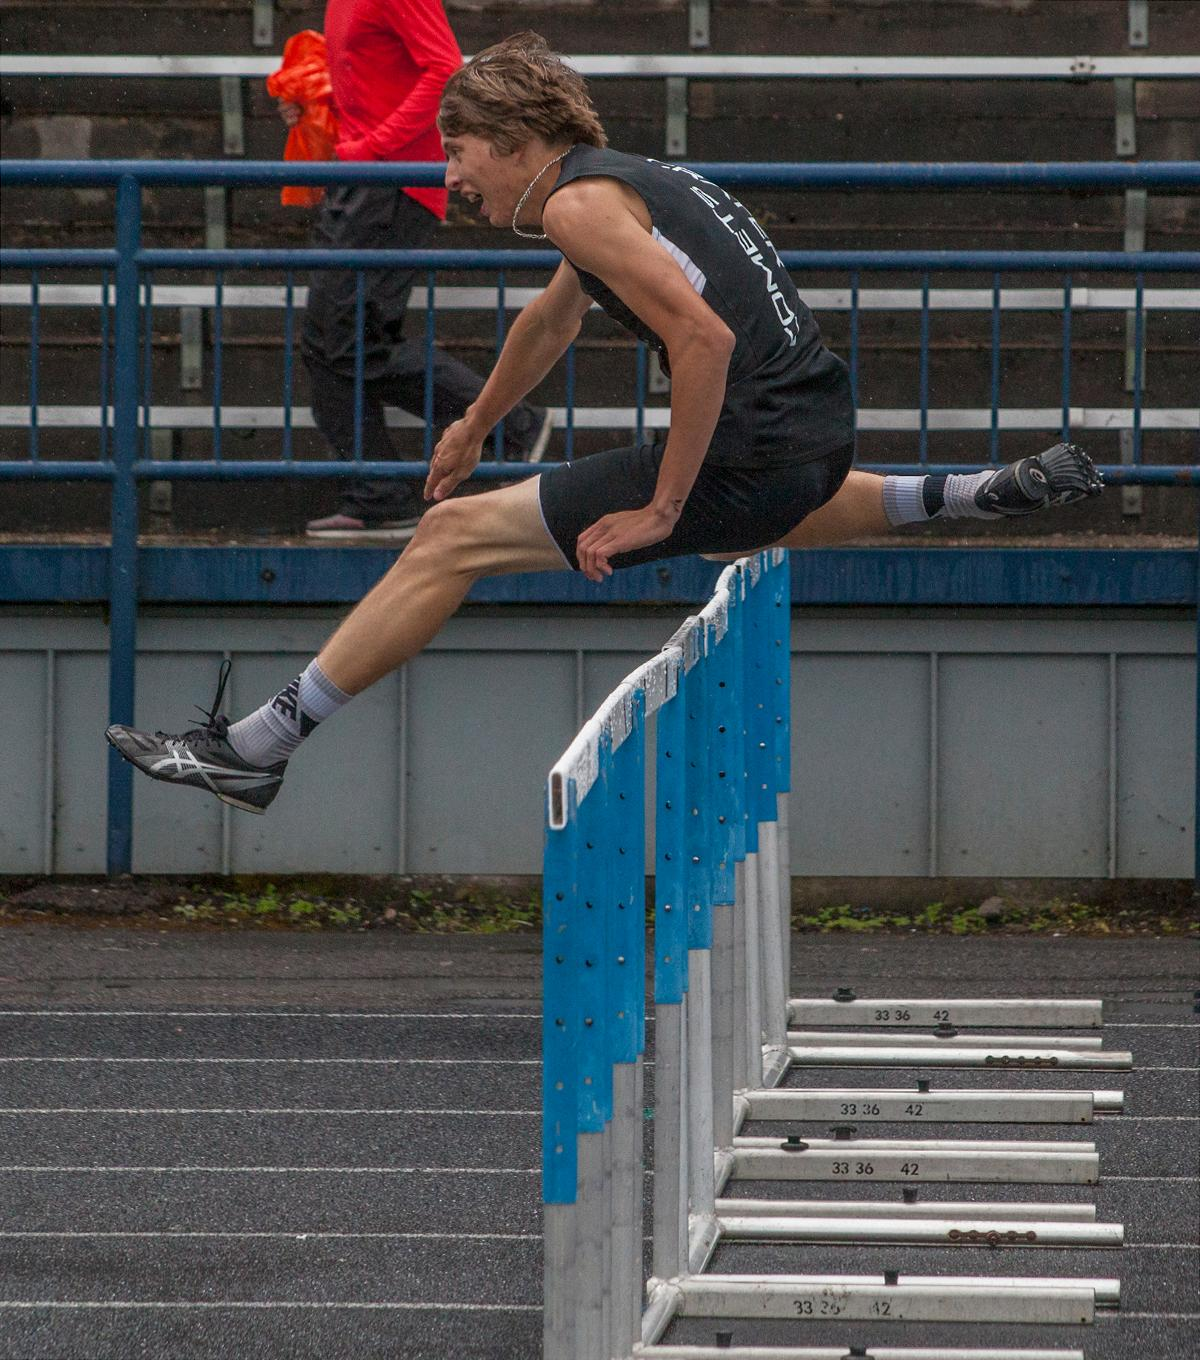 Cal Duke from Crater High School wins the Men's 110m Hurdles event with the time of 15.61 at the 5A-3 Midwestern League District Track Championship. Photo by Vannie Cooper, Oregon News Lab